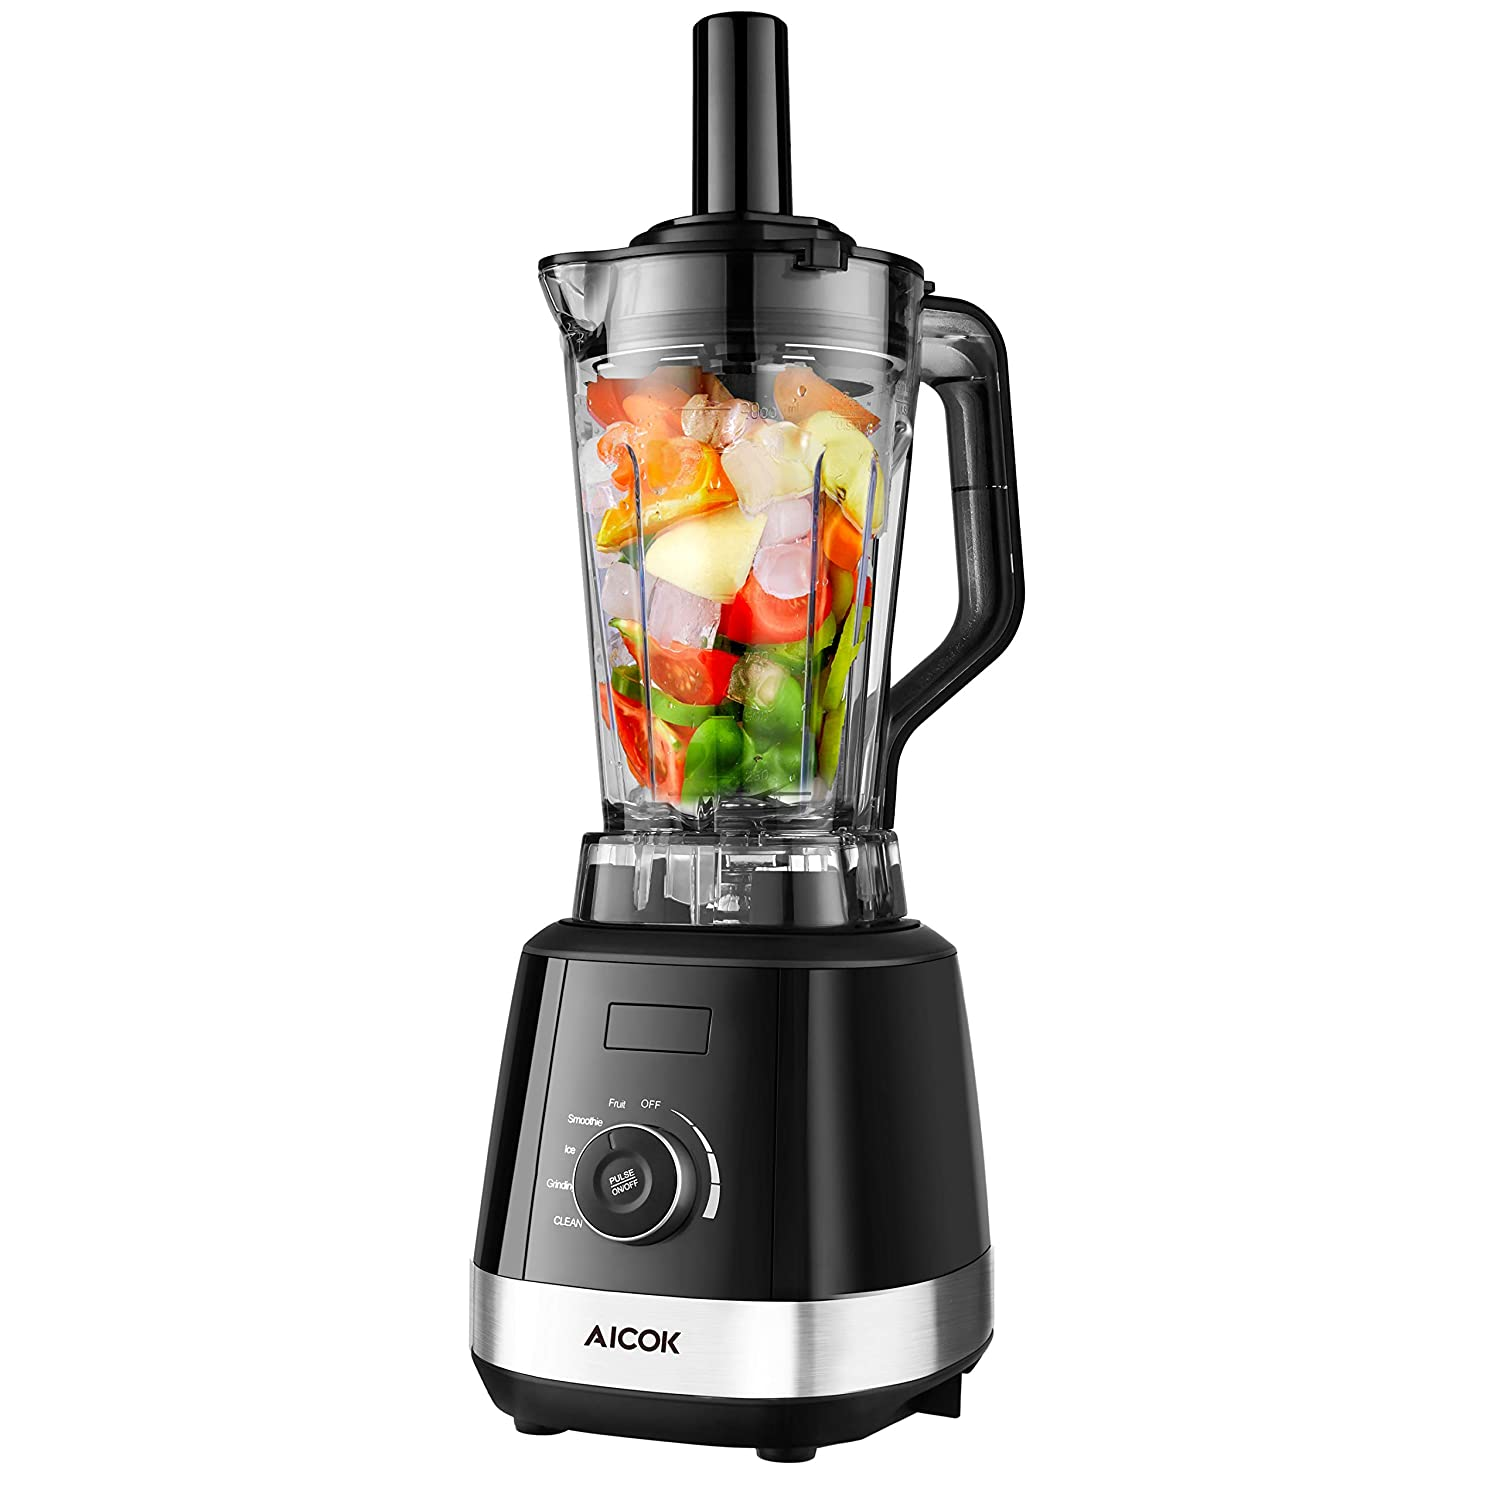 Aicok Blender, 1500W Smoothie Blender with Tamper, High Speed Commercial Blender 32,000 RPM, One Button Rotary Operation with LED Indicator, BPA-Free Tritan Pitcher and Sharp Stainless 6 Blade